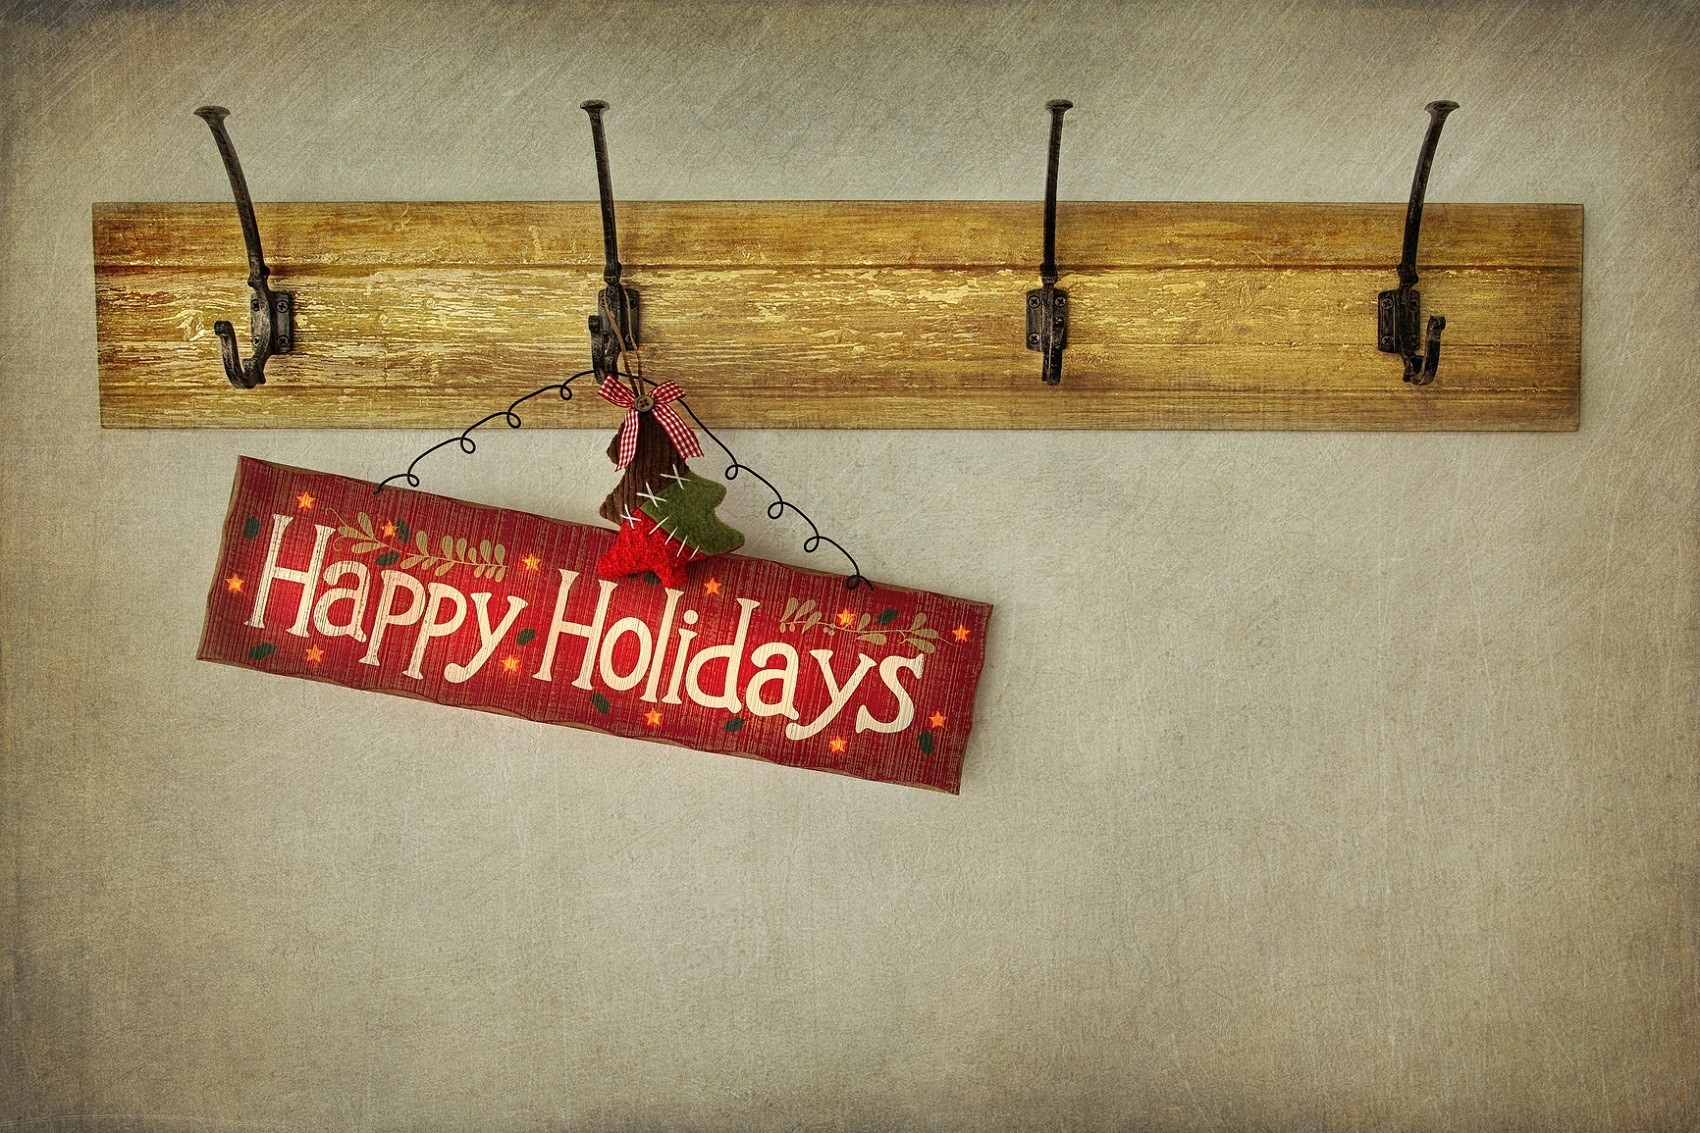 I'll be hanging up my blogging gloves for a little while. I'll put them right next to the Happy Holidays sign.